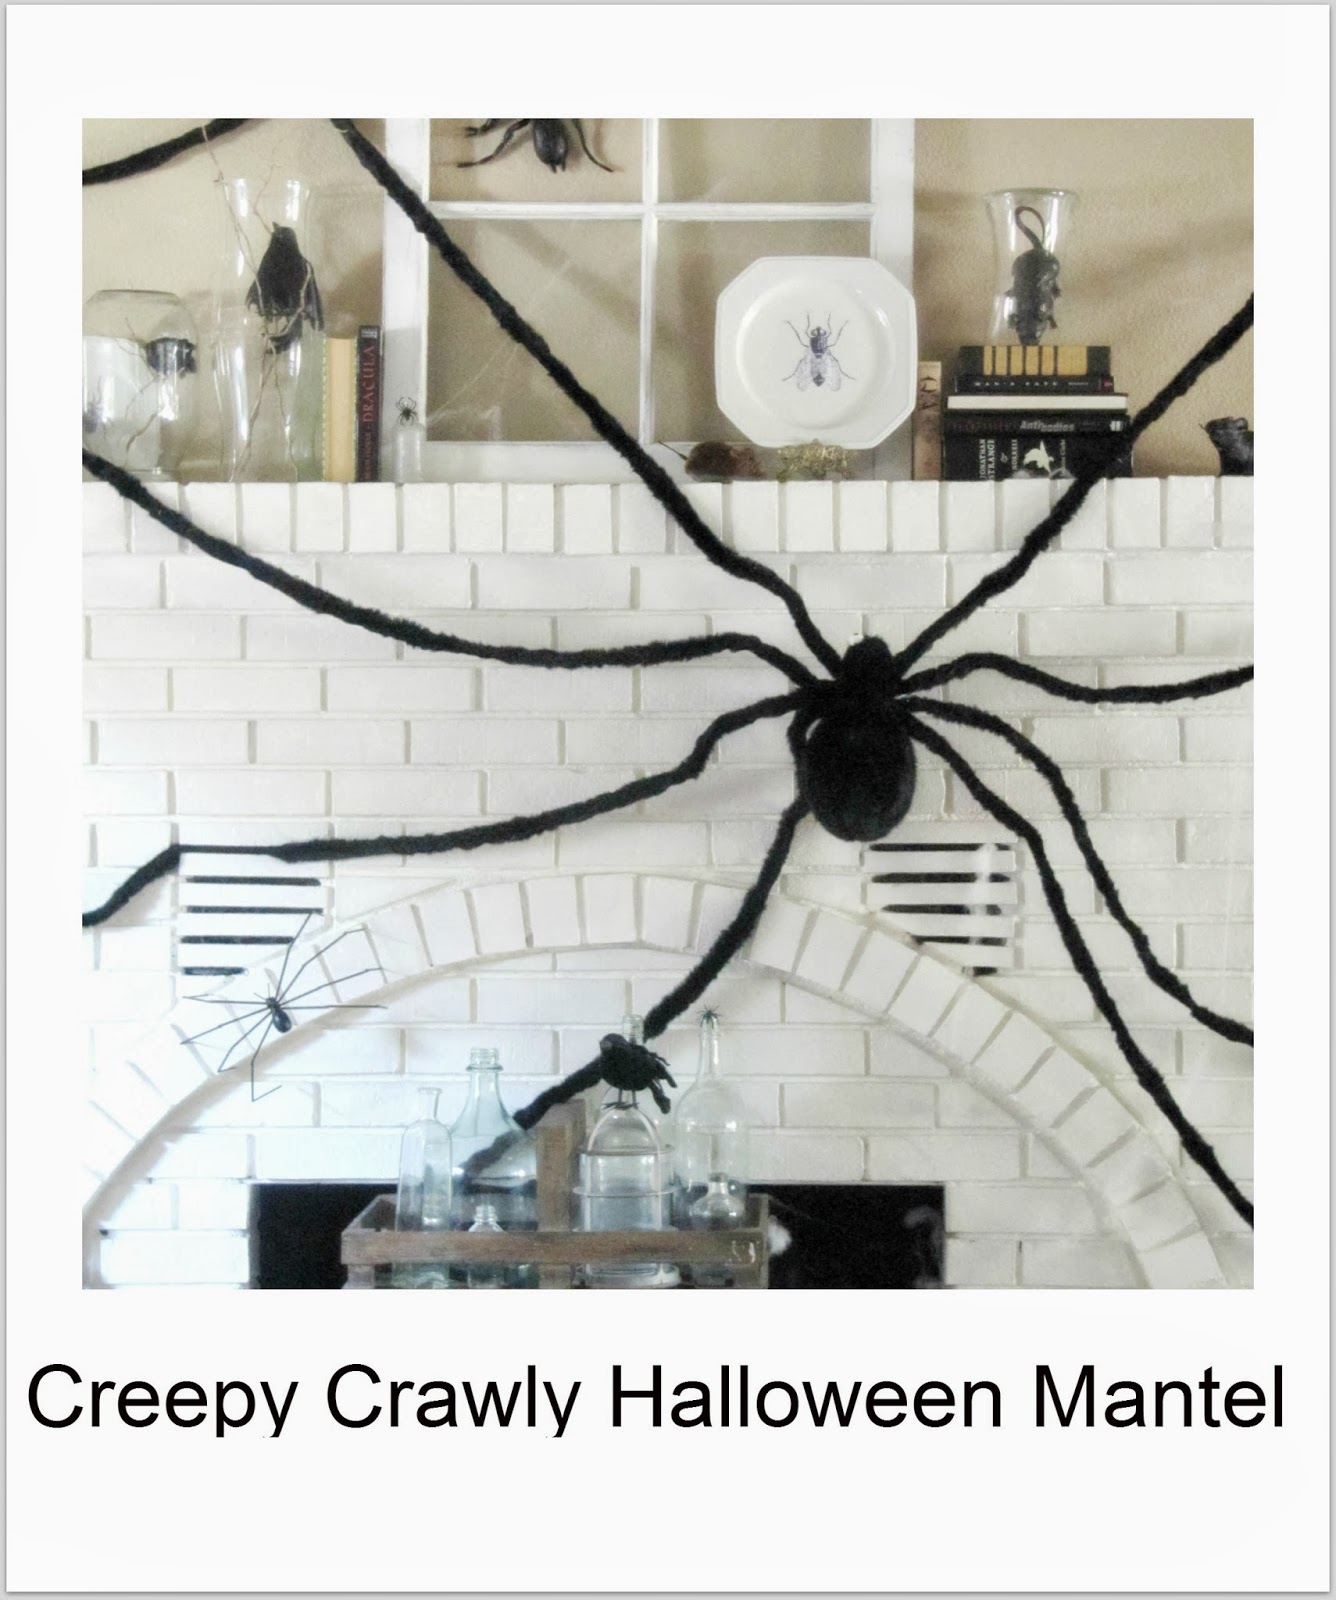 http://thewickerhouse.blogspot.com/2012/10/creepy-crawly-halloween-mantel.html